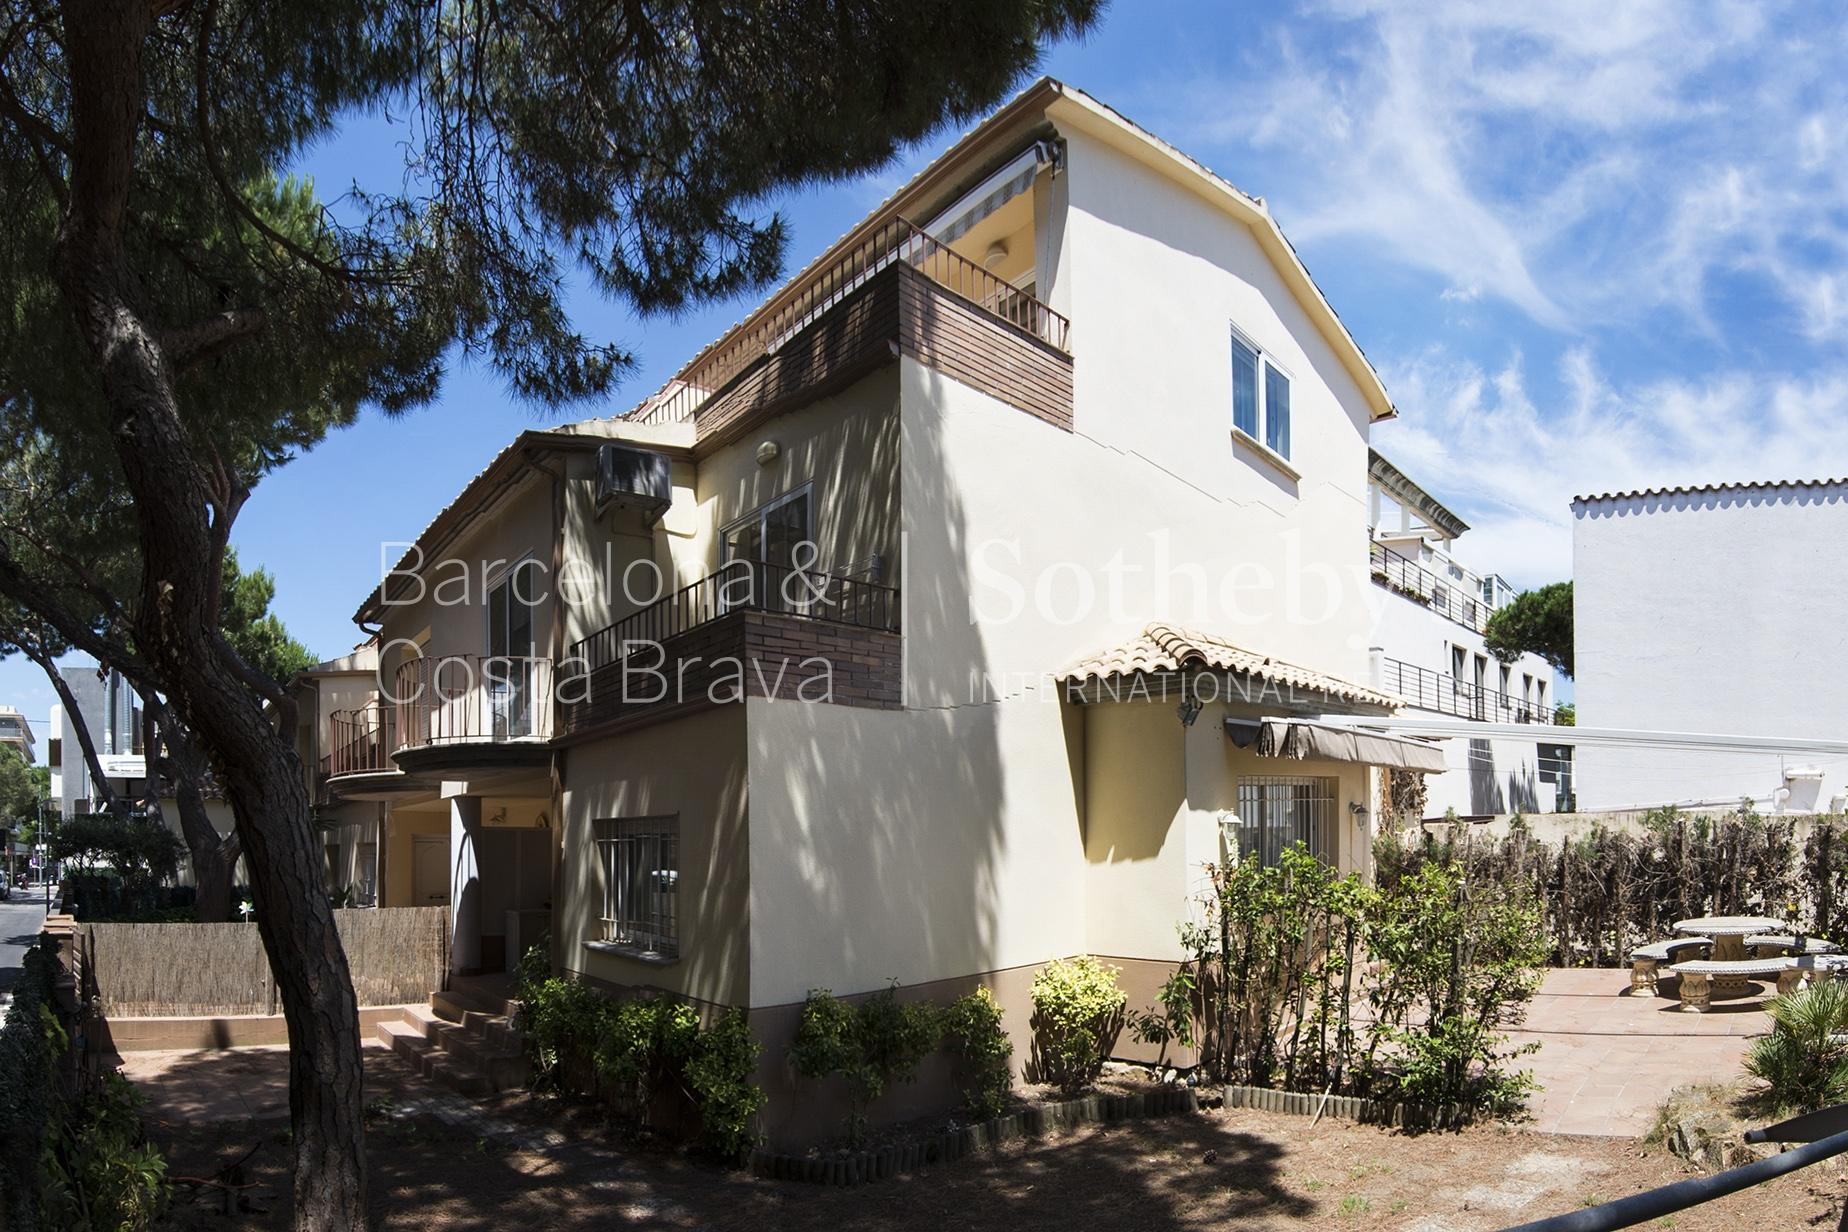 Single Family Home for Sale at Large terraced house in the centre of Playa de Aro Playa De Aro, Costa Brava 17250 Spain